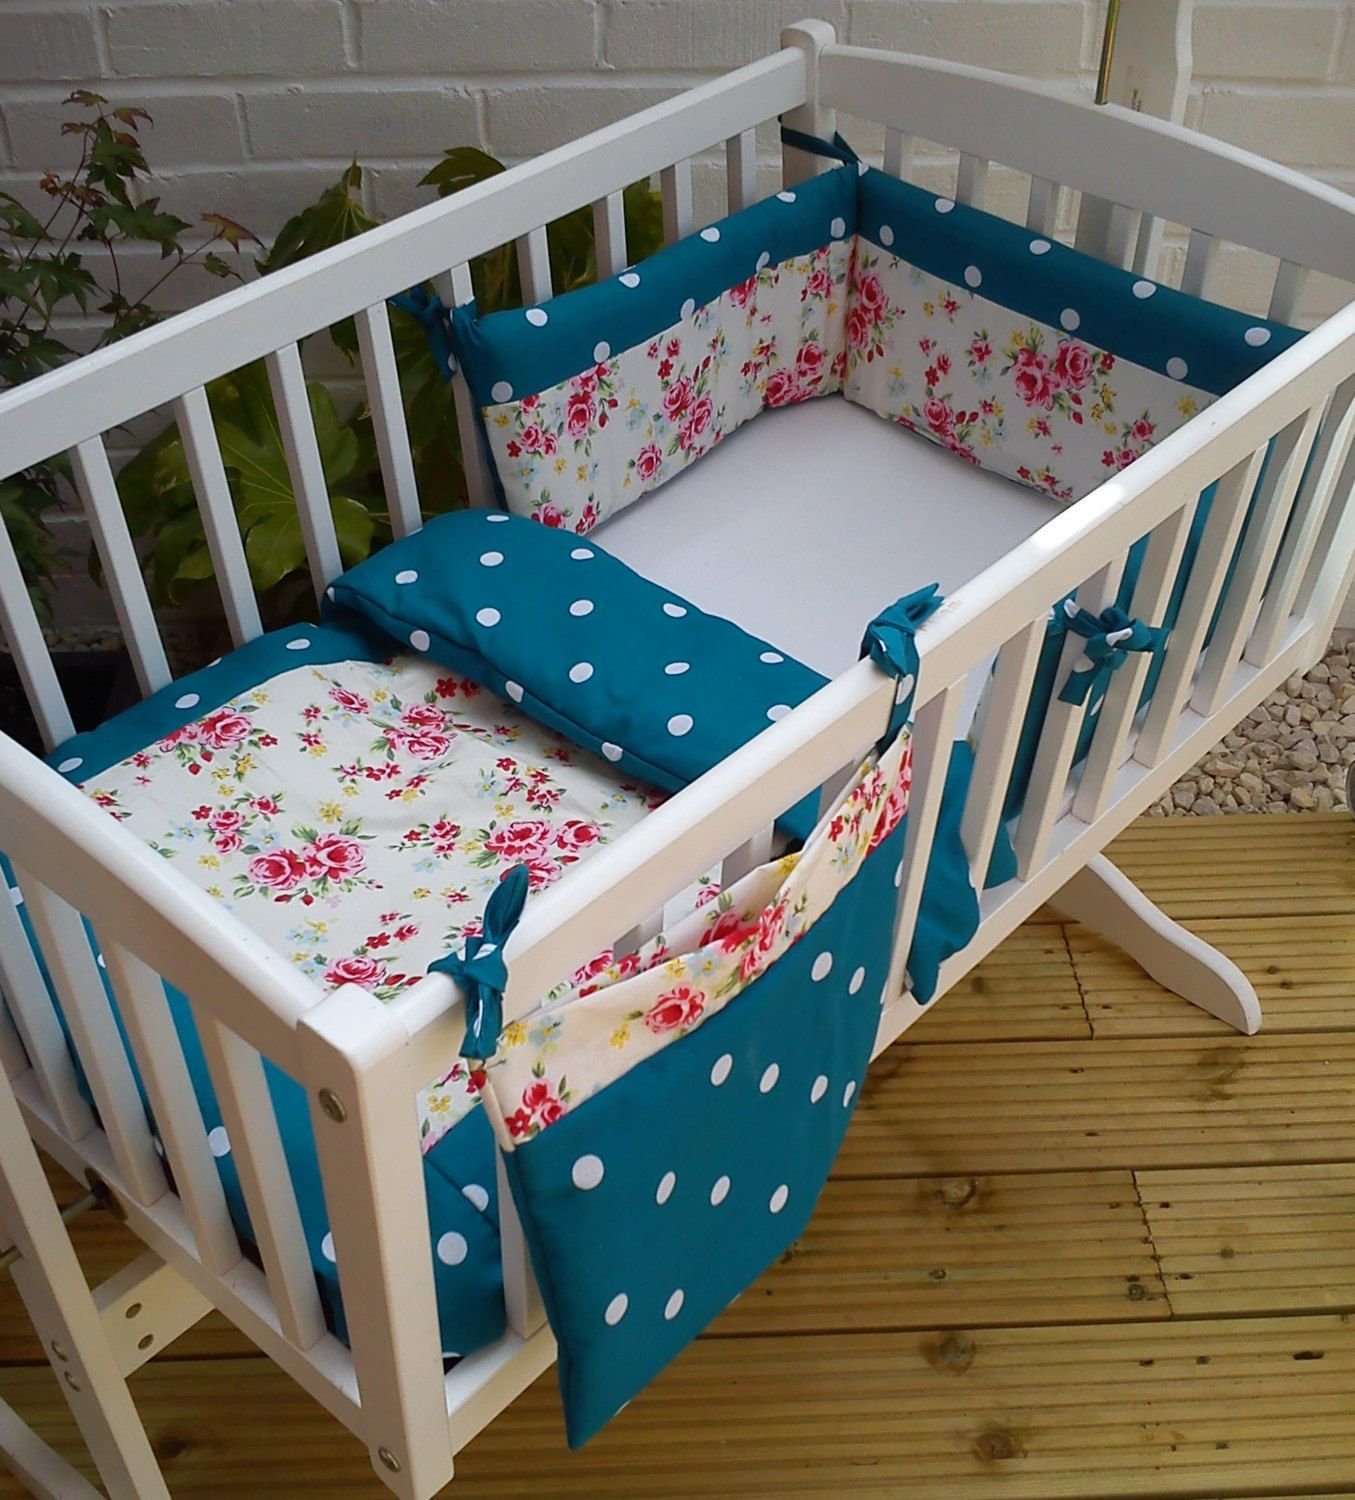 Adesivo Boca De Tubarão ~ Shabby Chic Floral Crib Cradle bedding Bumper and by SiennaChic, u00a334 99 Baby F Pinterest